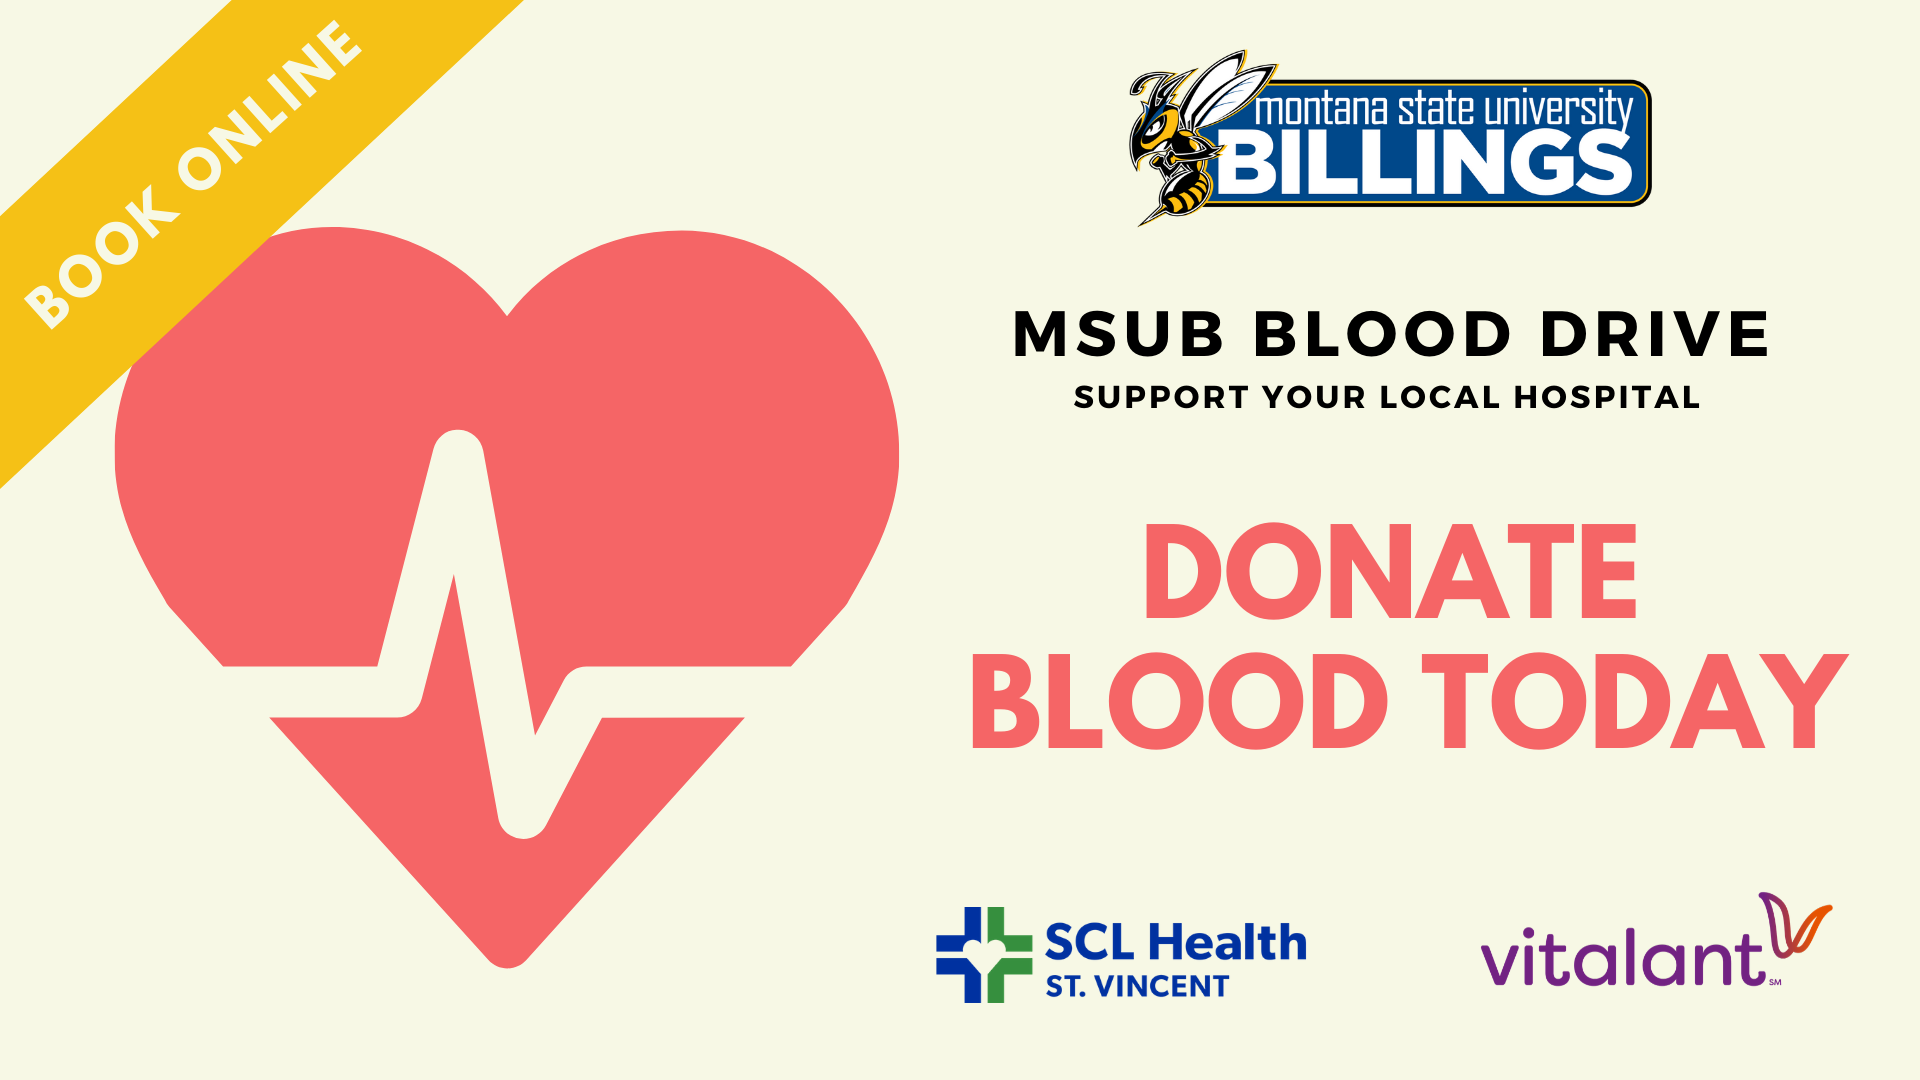 MSUB BLOOD DRIVE SUPPORT YOUR LOCAL HOSPITAL DONATE BLOOD TODAY BOOK ONLINE